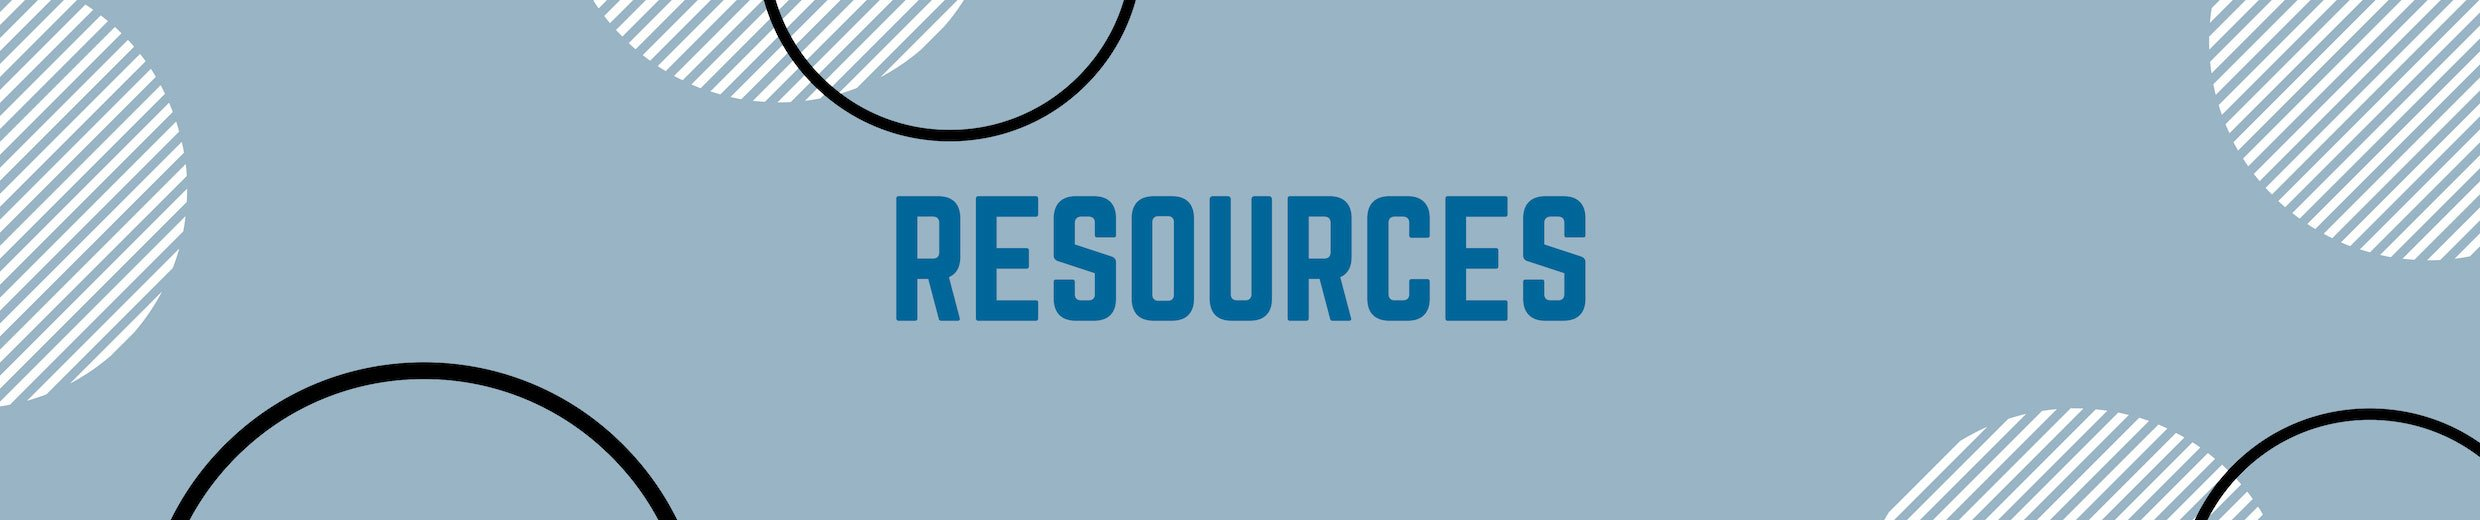 ResourcesSplash